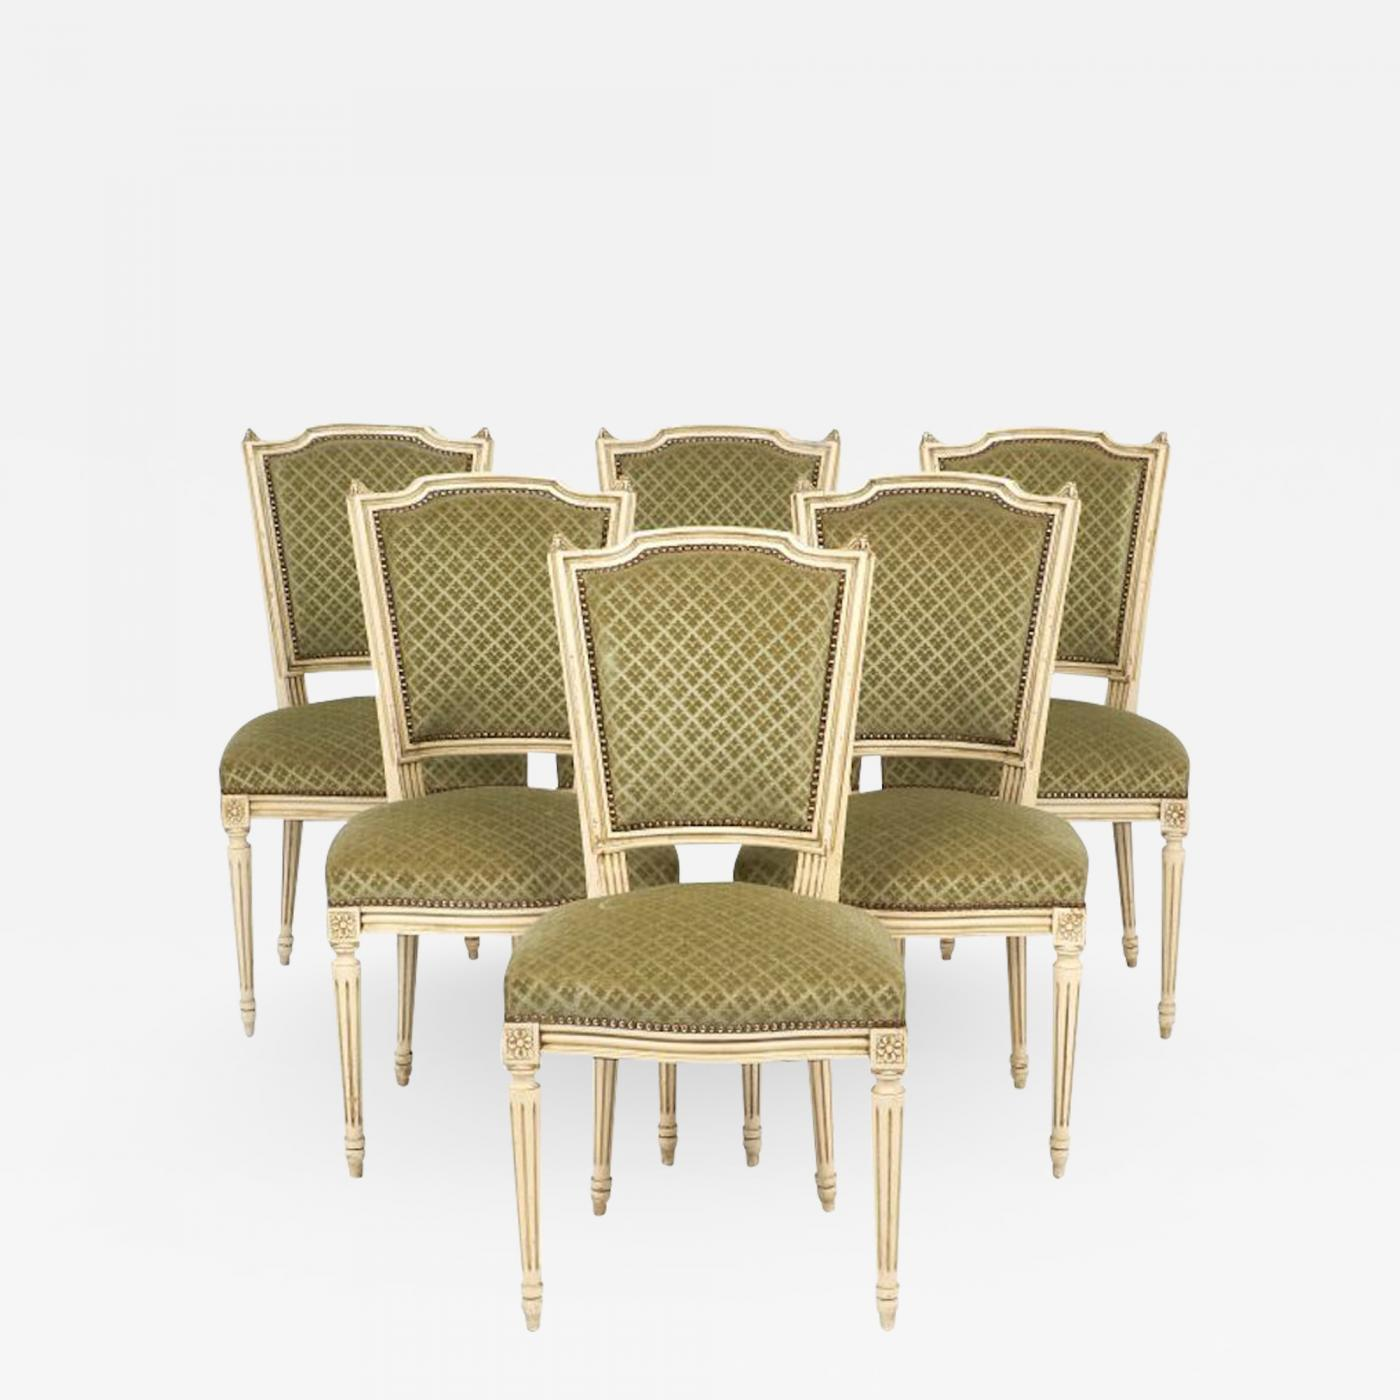 Listings / Furniture / Seating / Dining Chairs · Louis XVI Style French  Antique ... - Louis XVI-Style French Antique Sage Green Dining Chairs